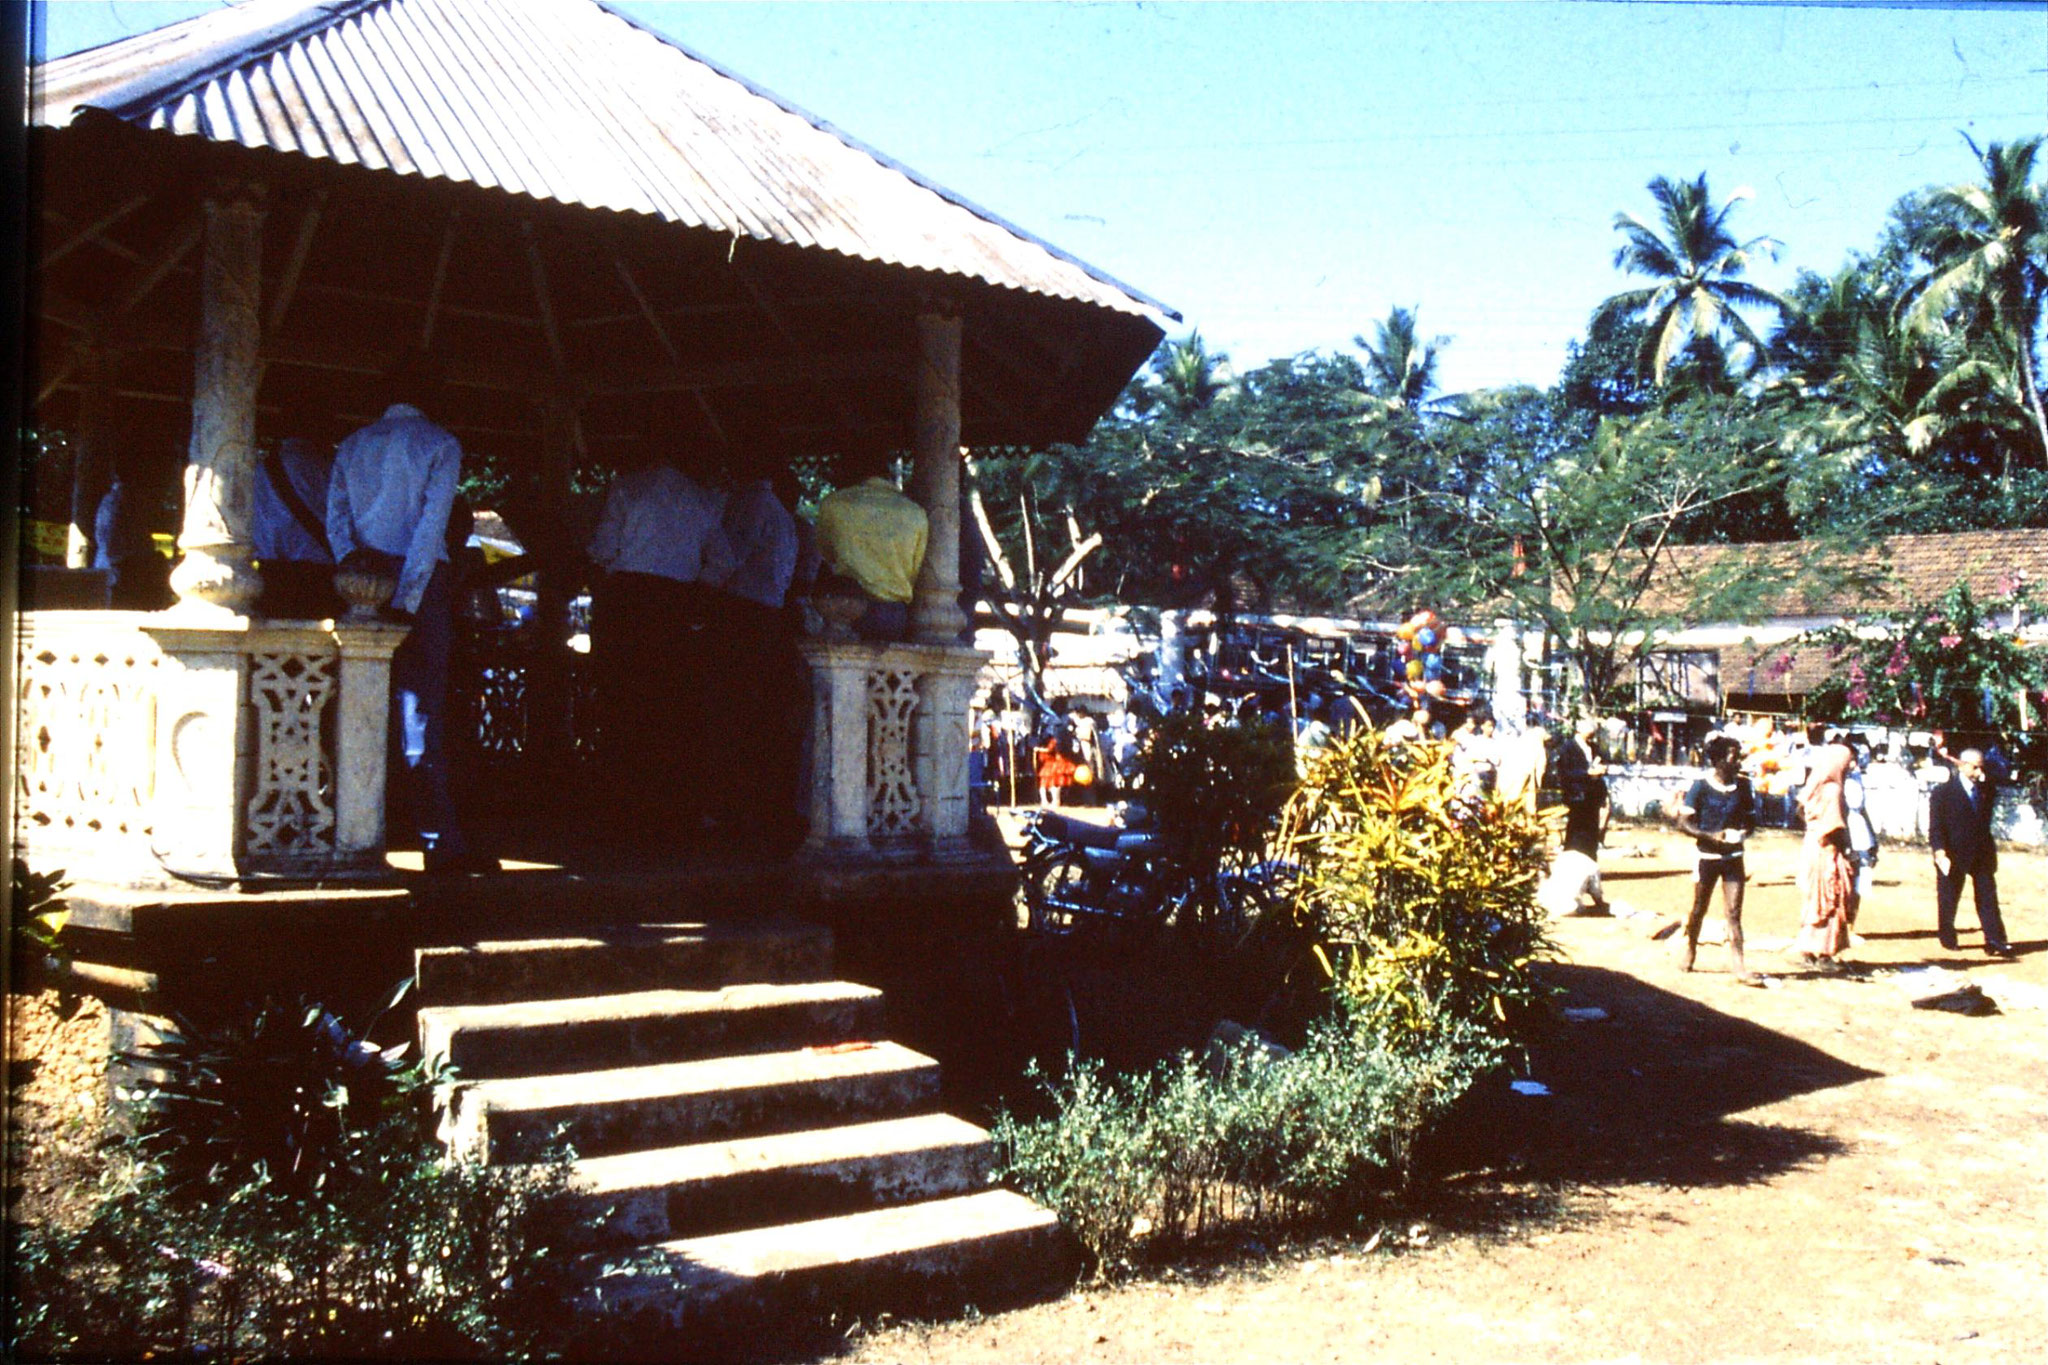 31/12/1989: 8: Siolim church and 10.30 mass, bandstand